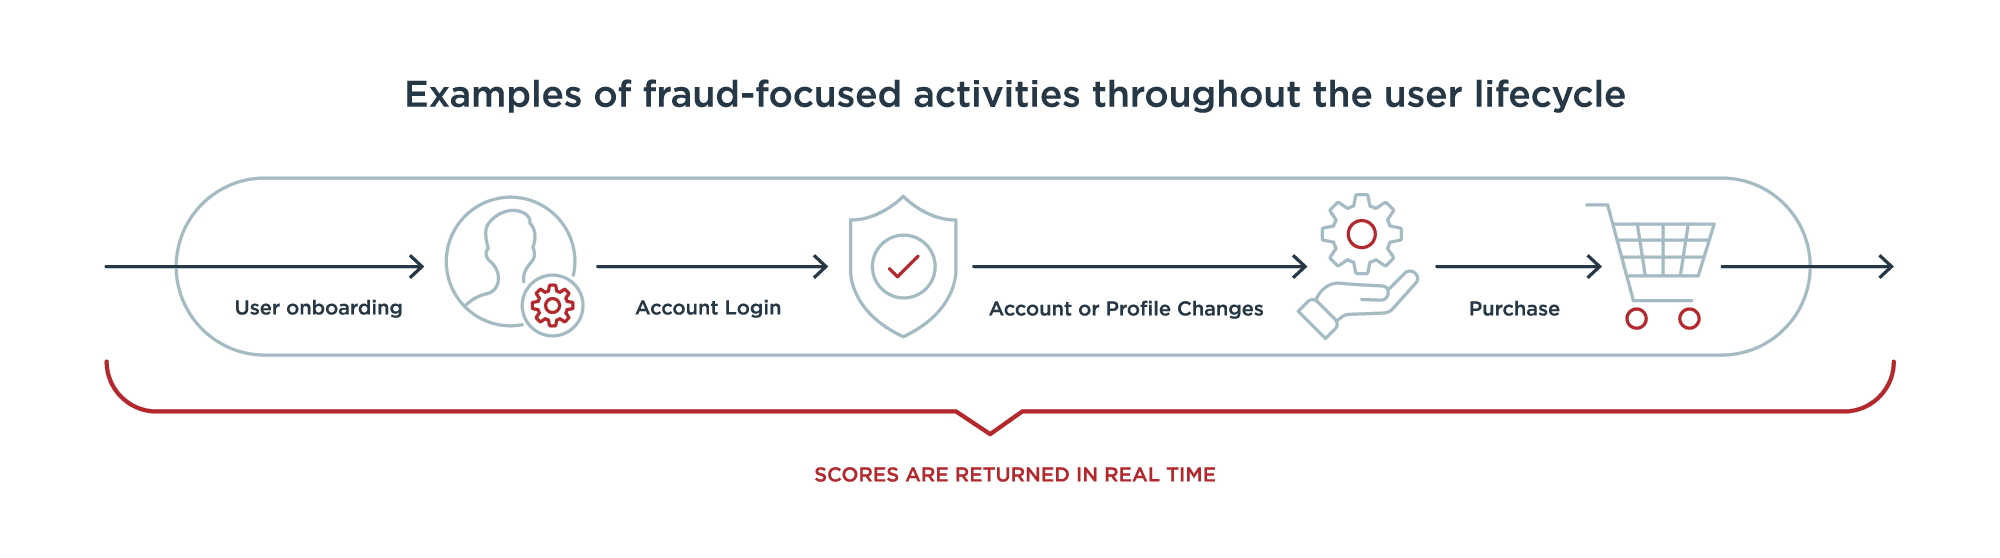 Examples of fraud-focused activities throughout the user lifecycle